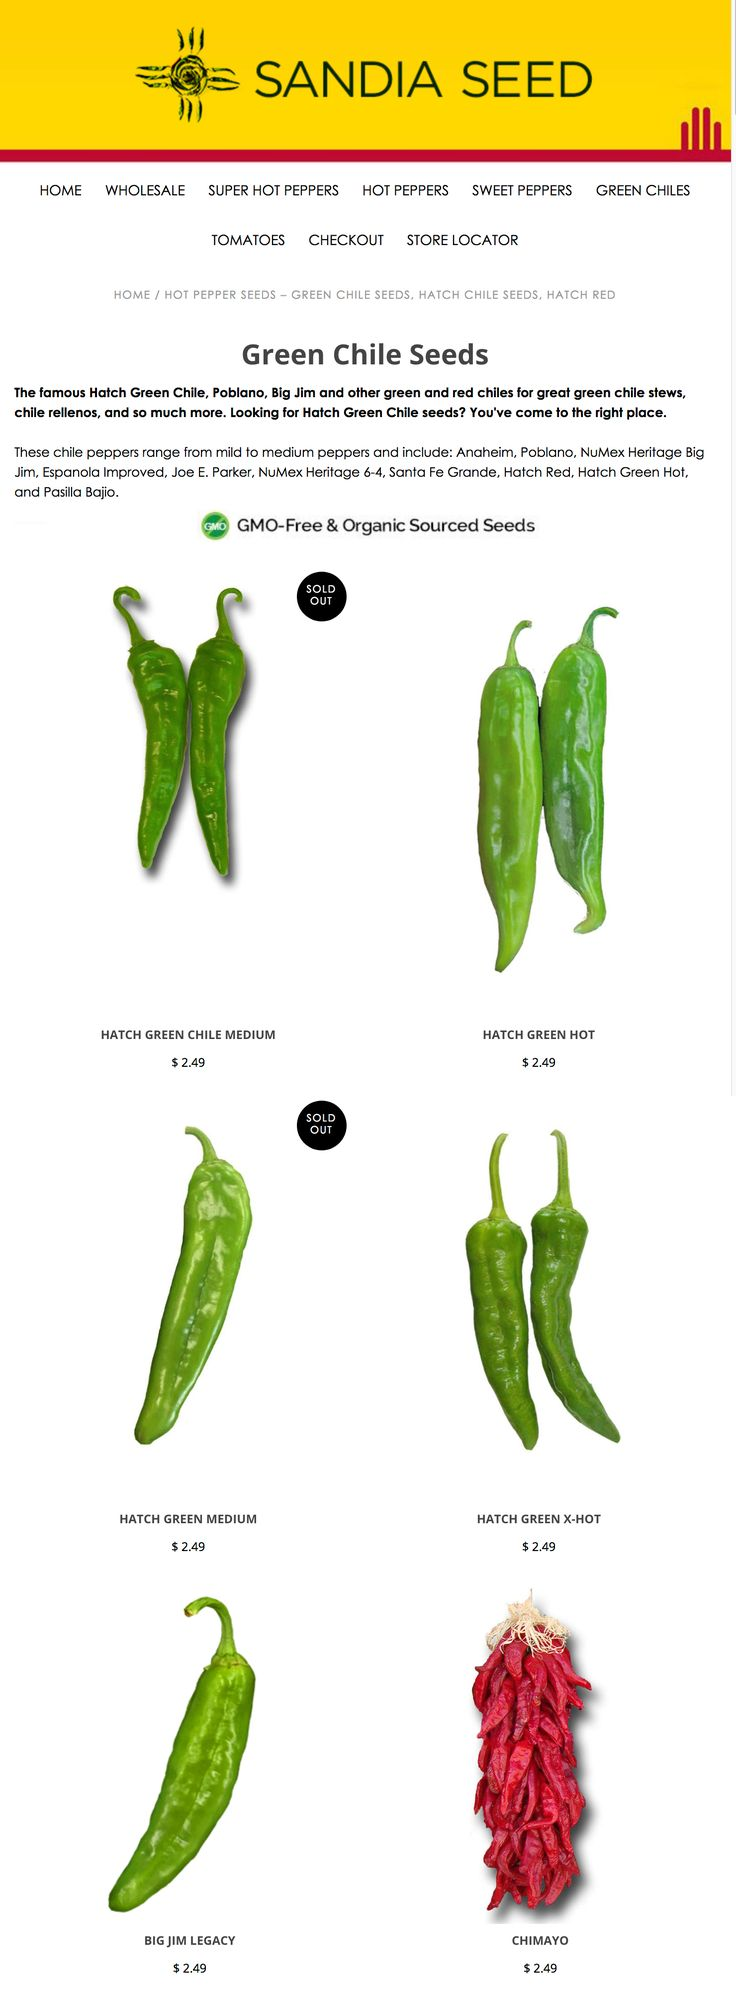 Hatch seeds and green chile seeds: https://www.sandiaseed.com/collections/green-chile-seeds